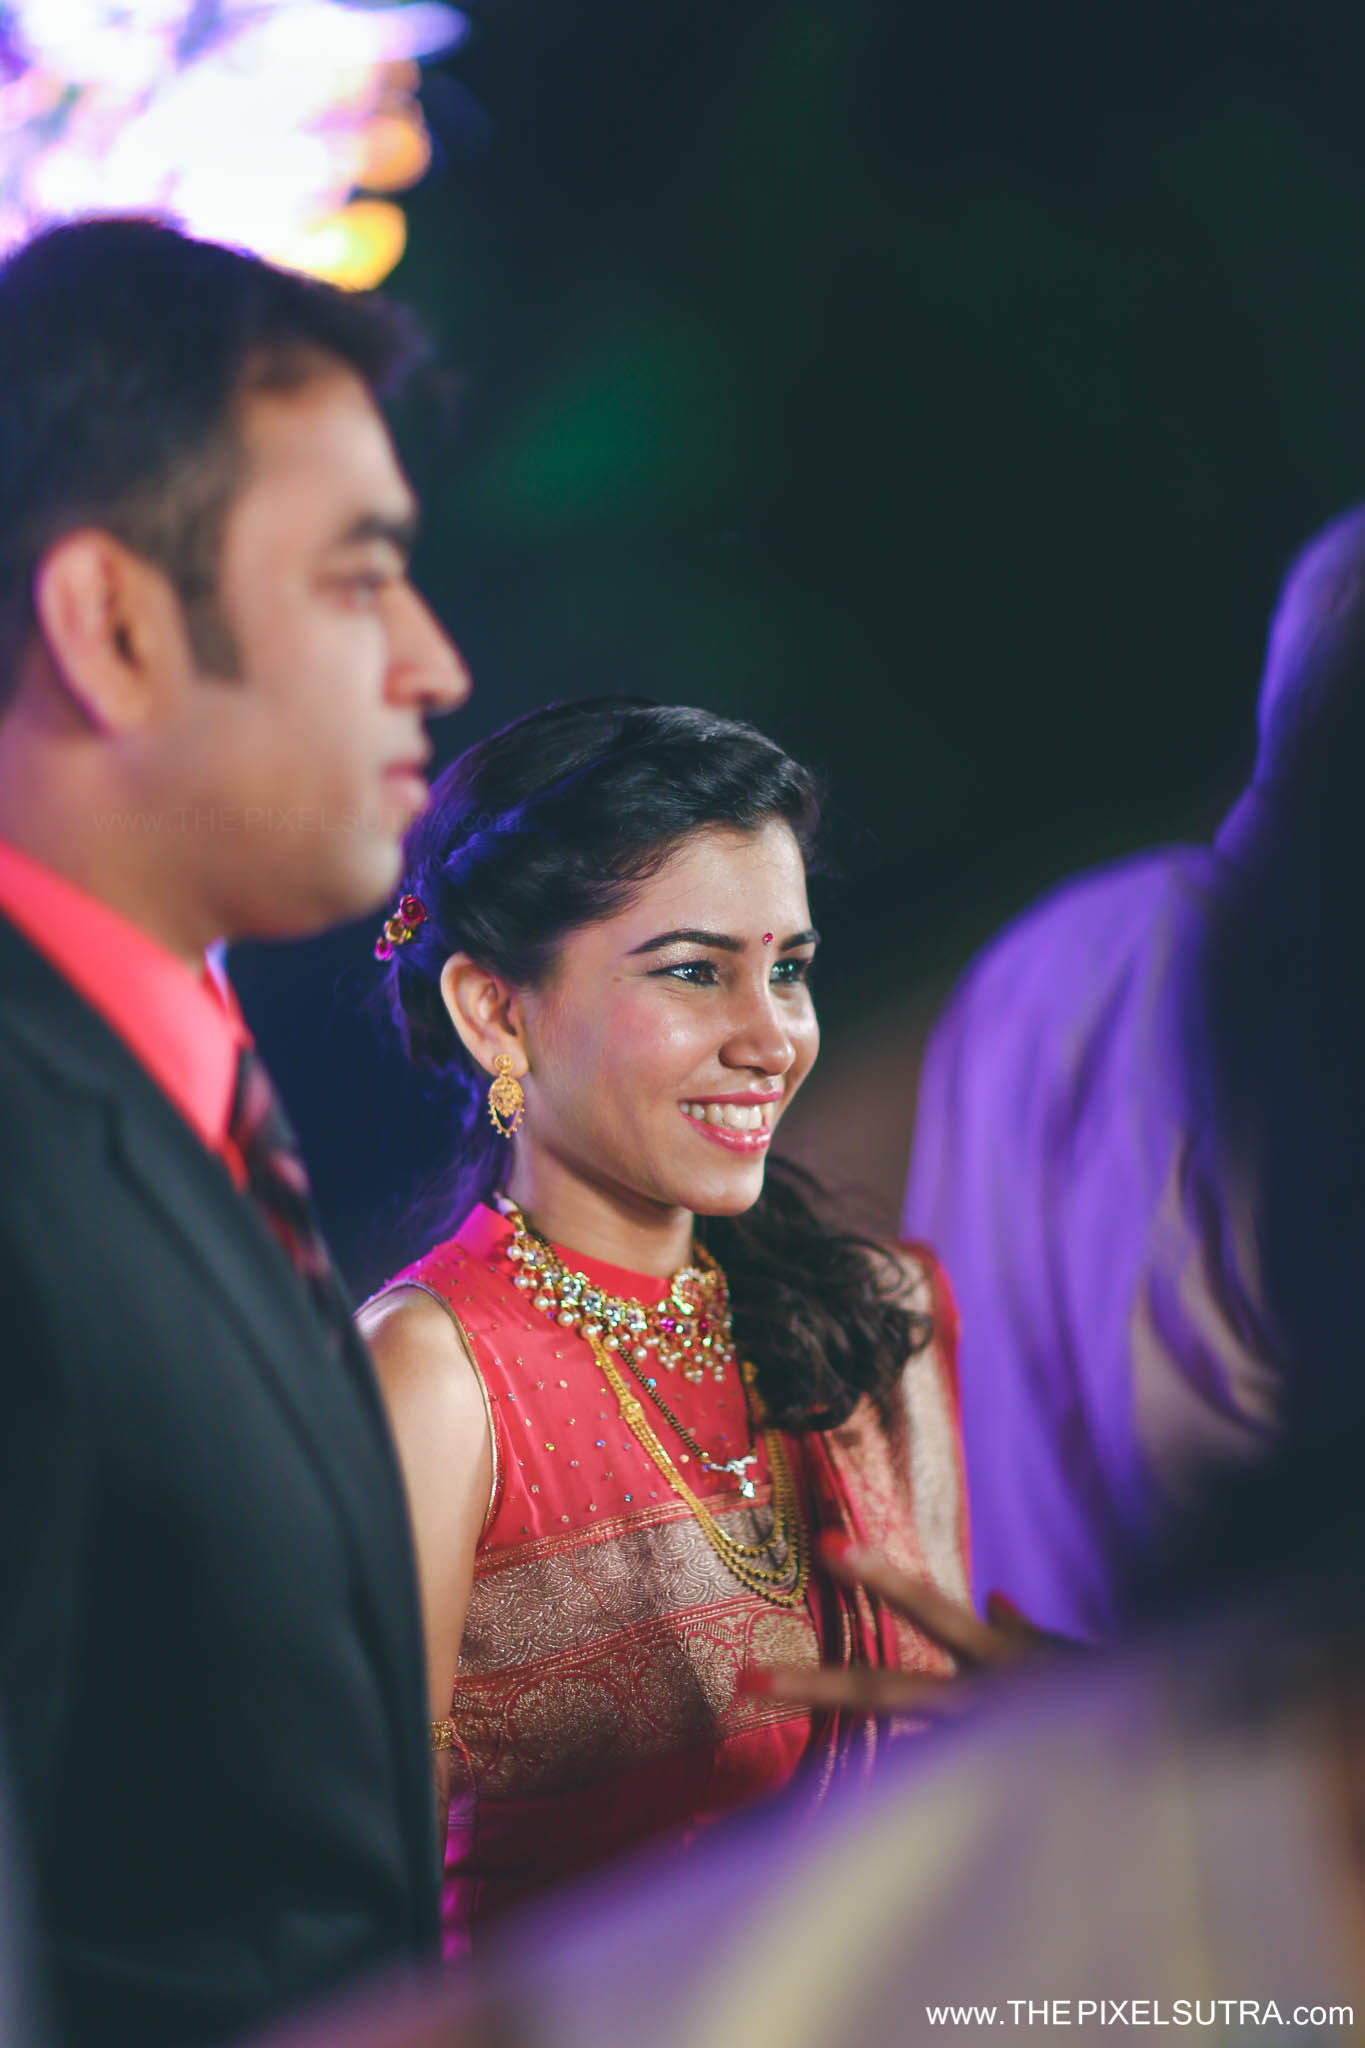 The Pixel Sutra Nachiket x Priyanka Candid Wedding photographer Mumbai Best  (63).jpg